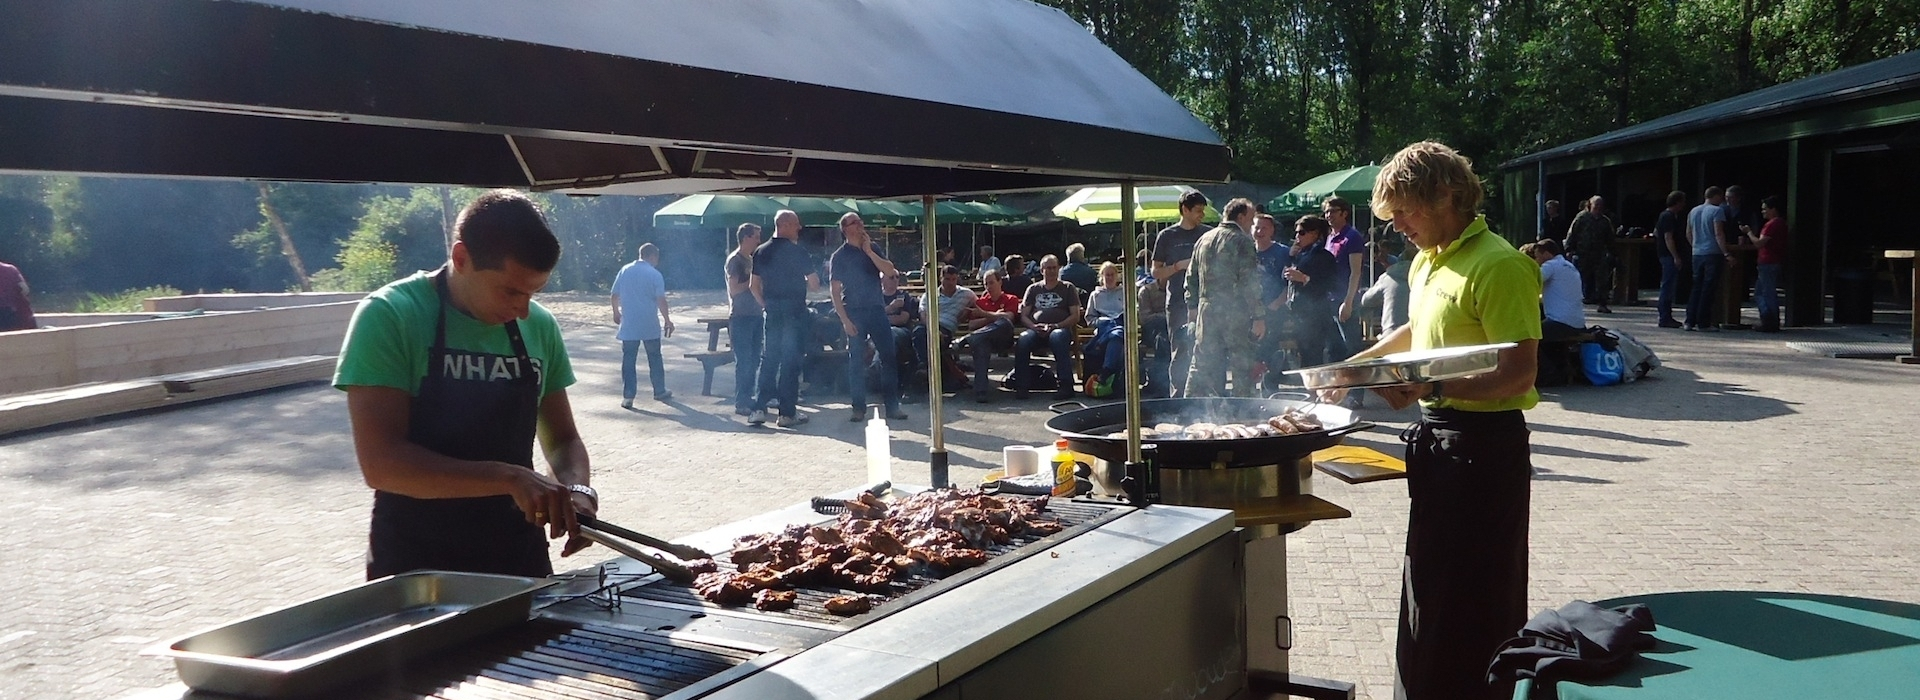 14695177220barbecue-paintball.jpg